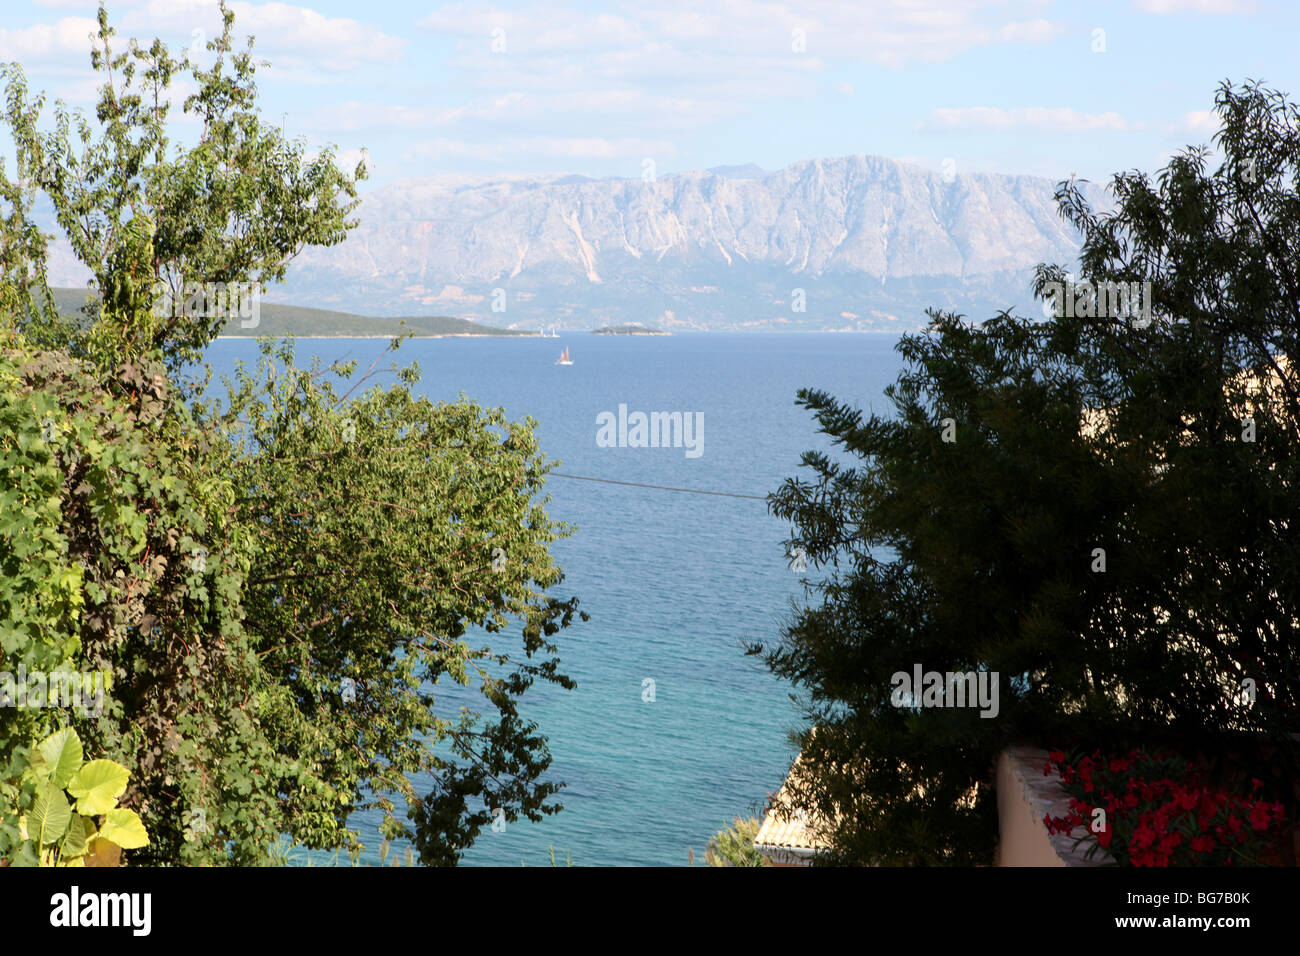 View across the Ionian sea from the Greek Island of Lefkas towards the Greek mainland - Stock Image